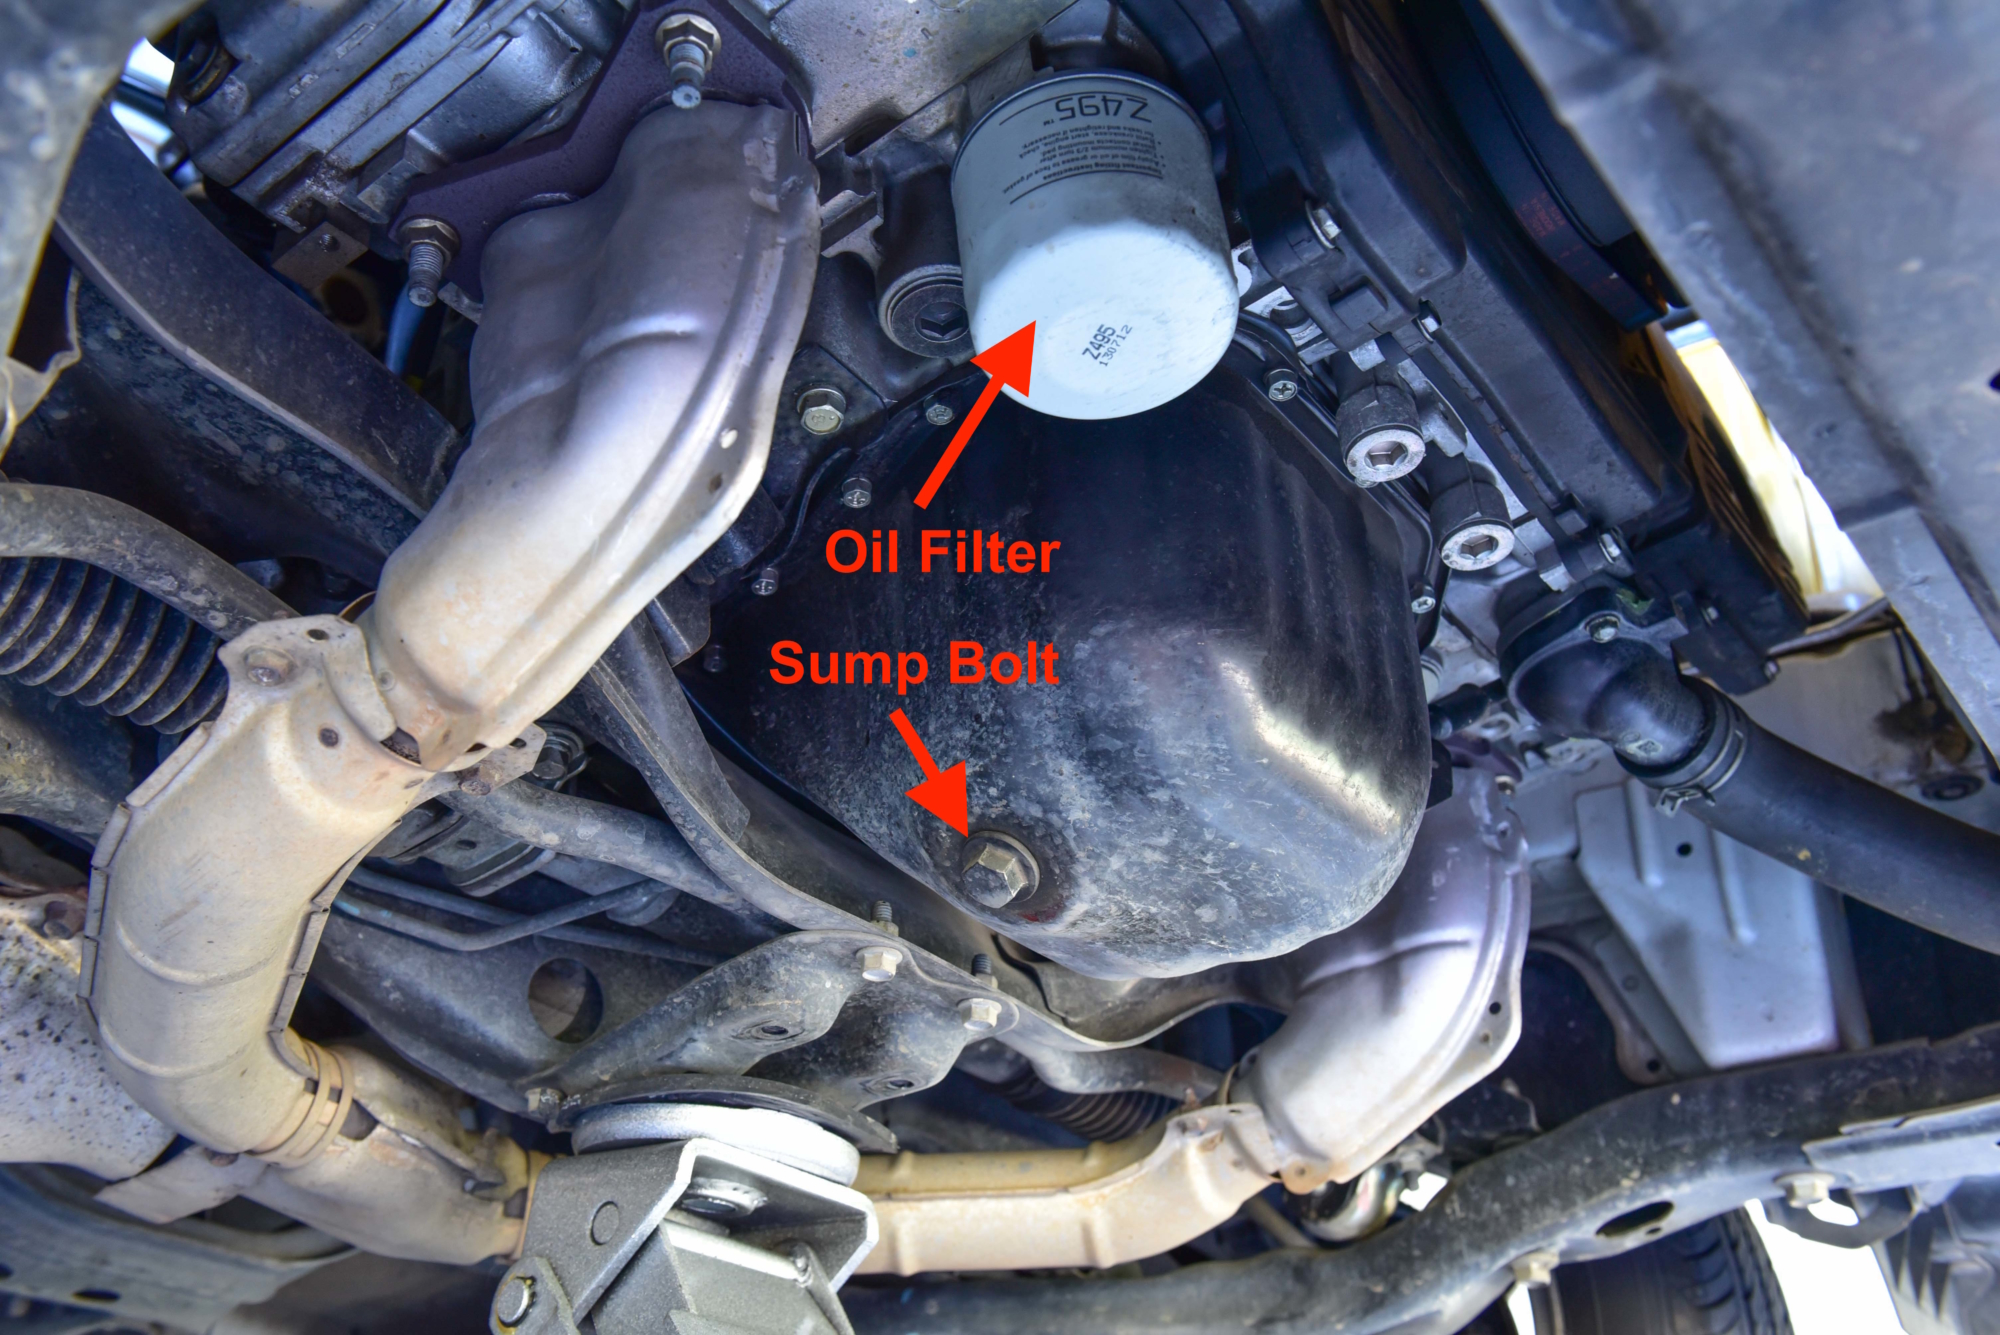 Subaru Outback Engine Diagram Which Oil Filter To Use Subaru